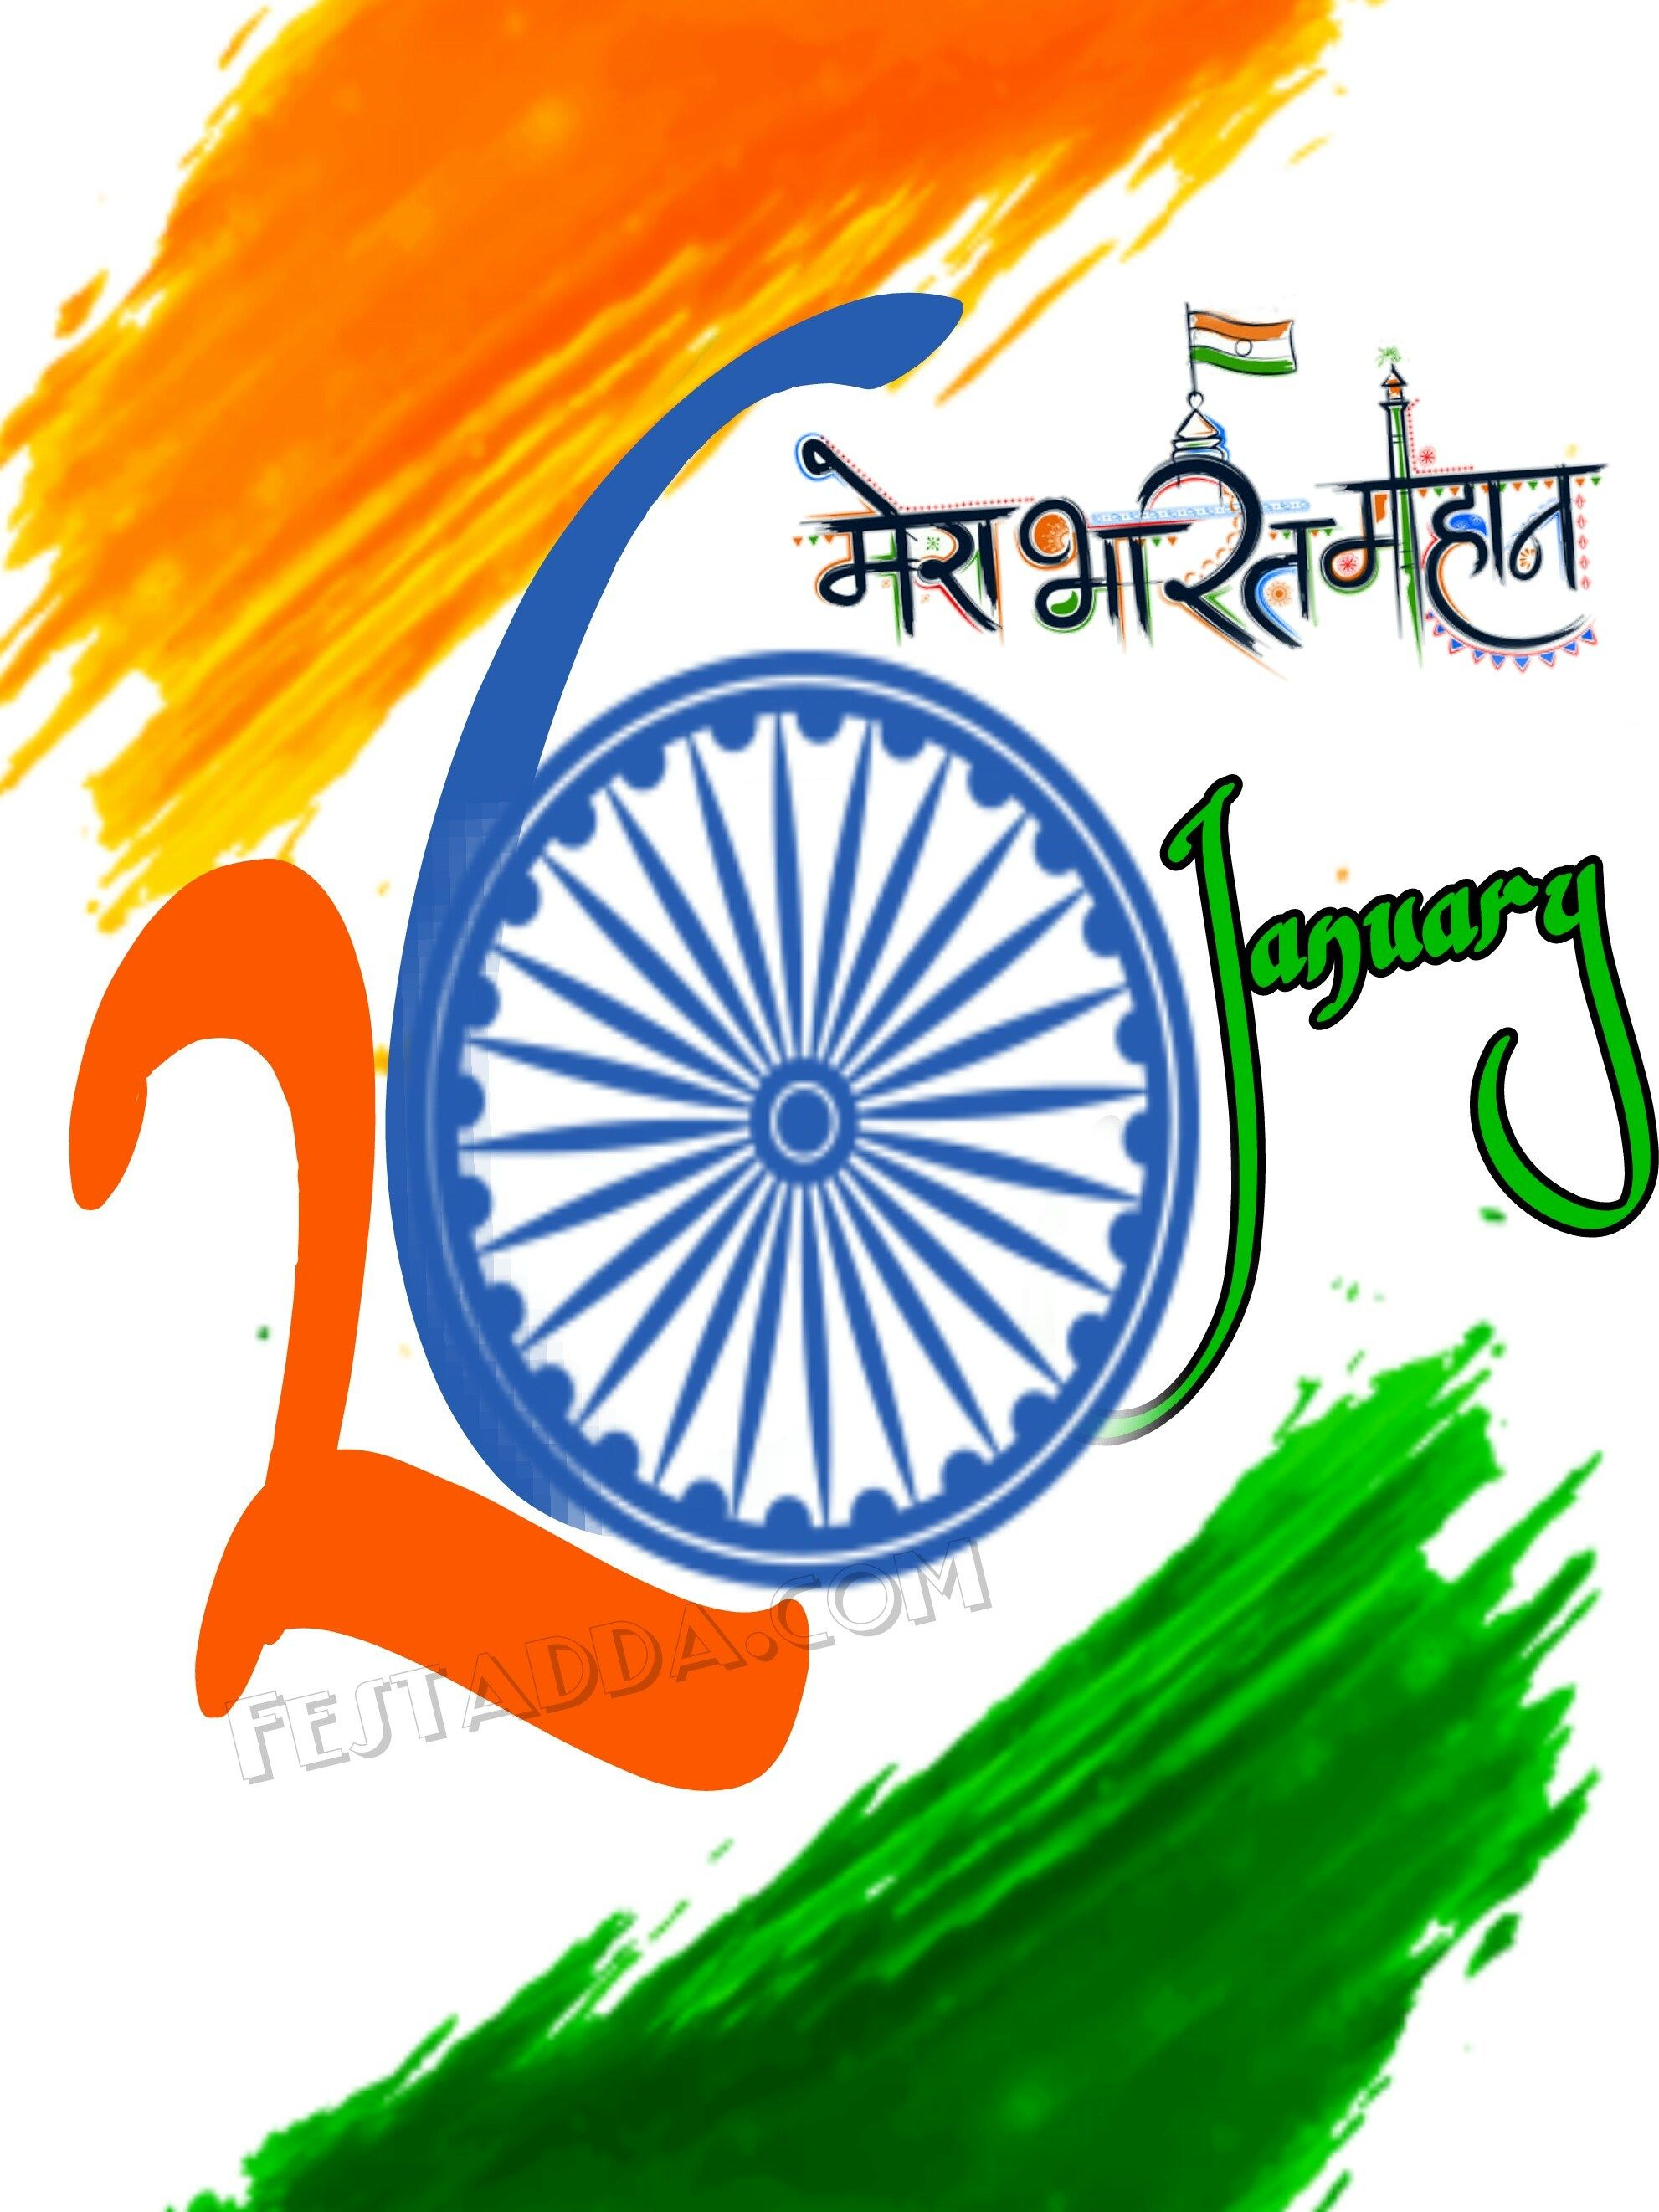 Vande Mataram Images Full Hd Download - Happy Republic Day 2019 Wishes , HD Wallpaper & Backgrounds